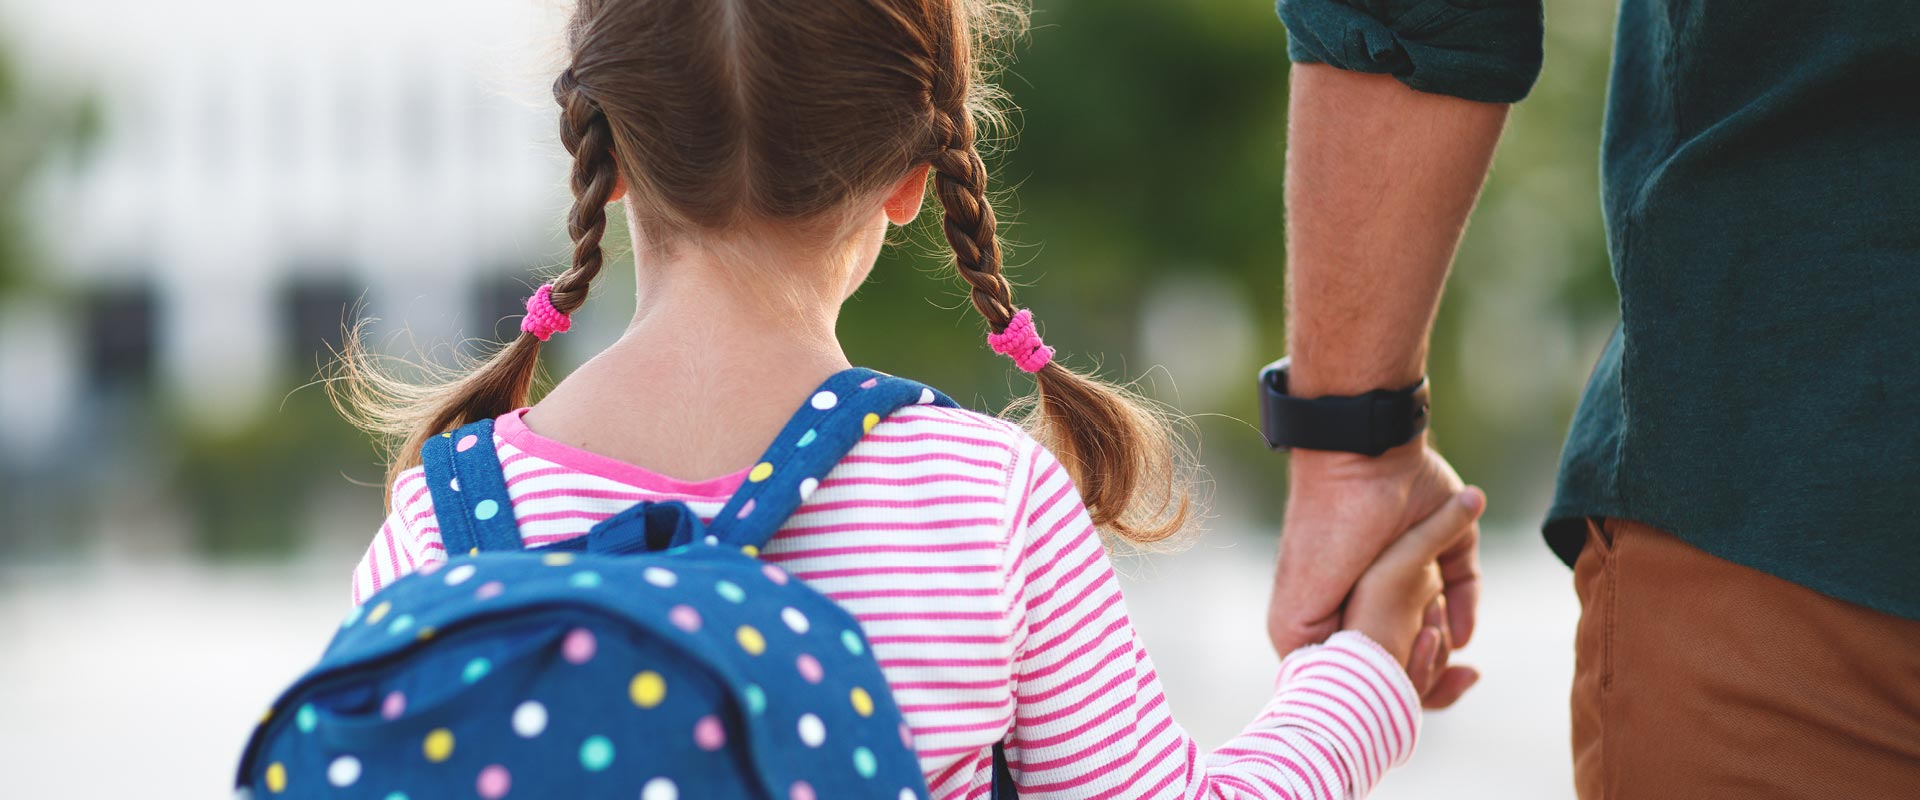 Young girl wearing backpack holding her father's hand